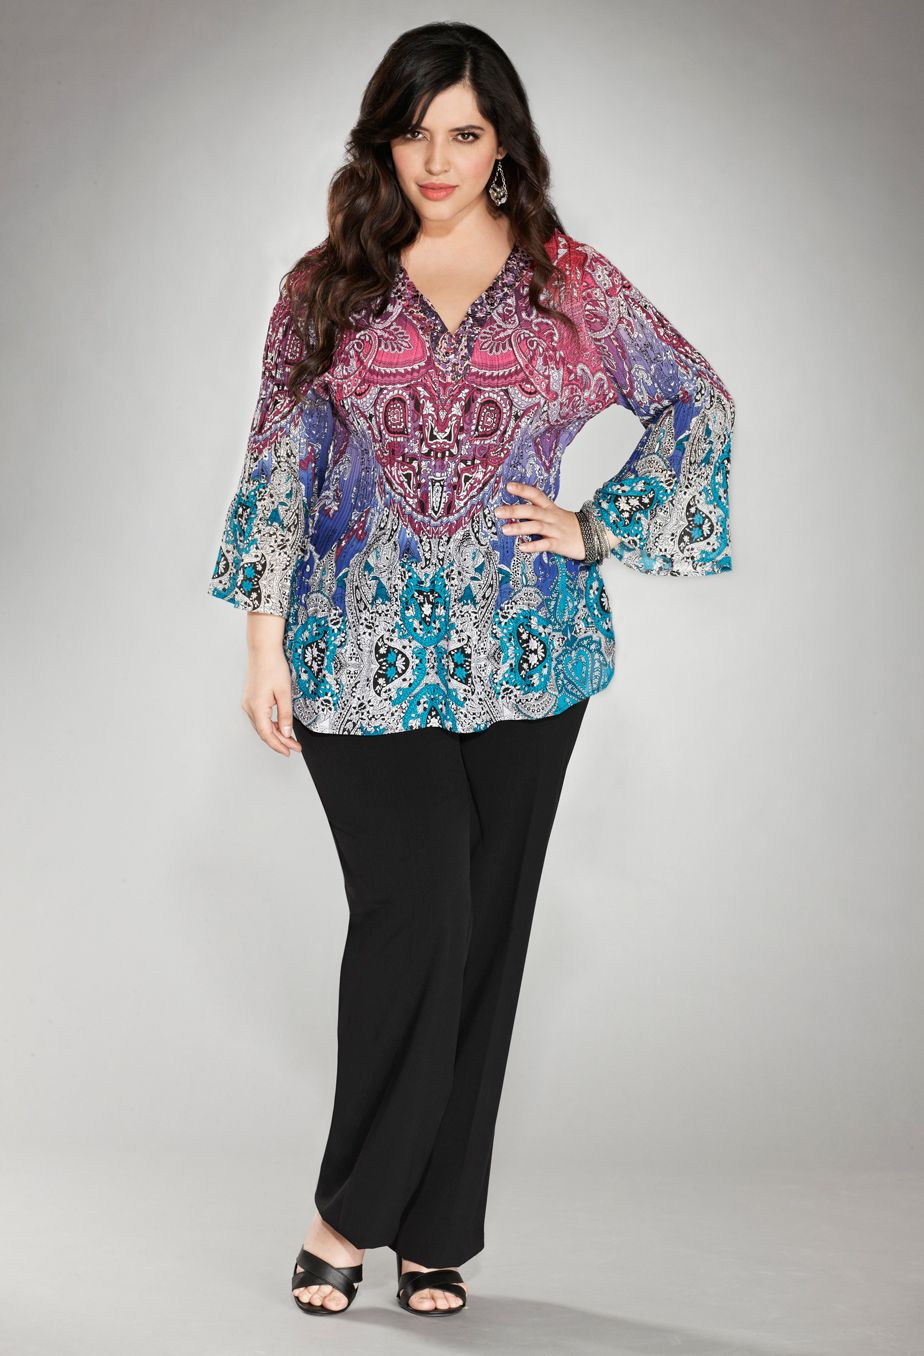 Plus Size All Colored Up Plus Size Outfits Avenue Plus Size Clothing Online Plus Size Outfits Fashion